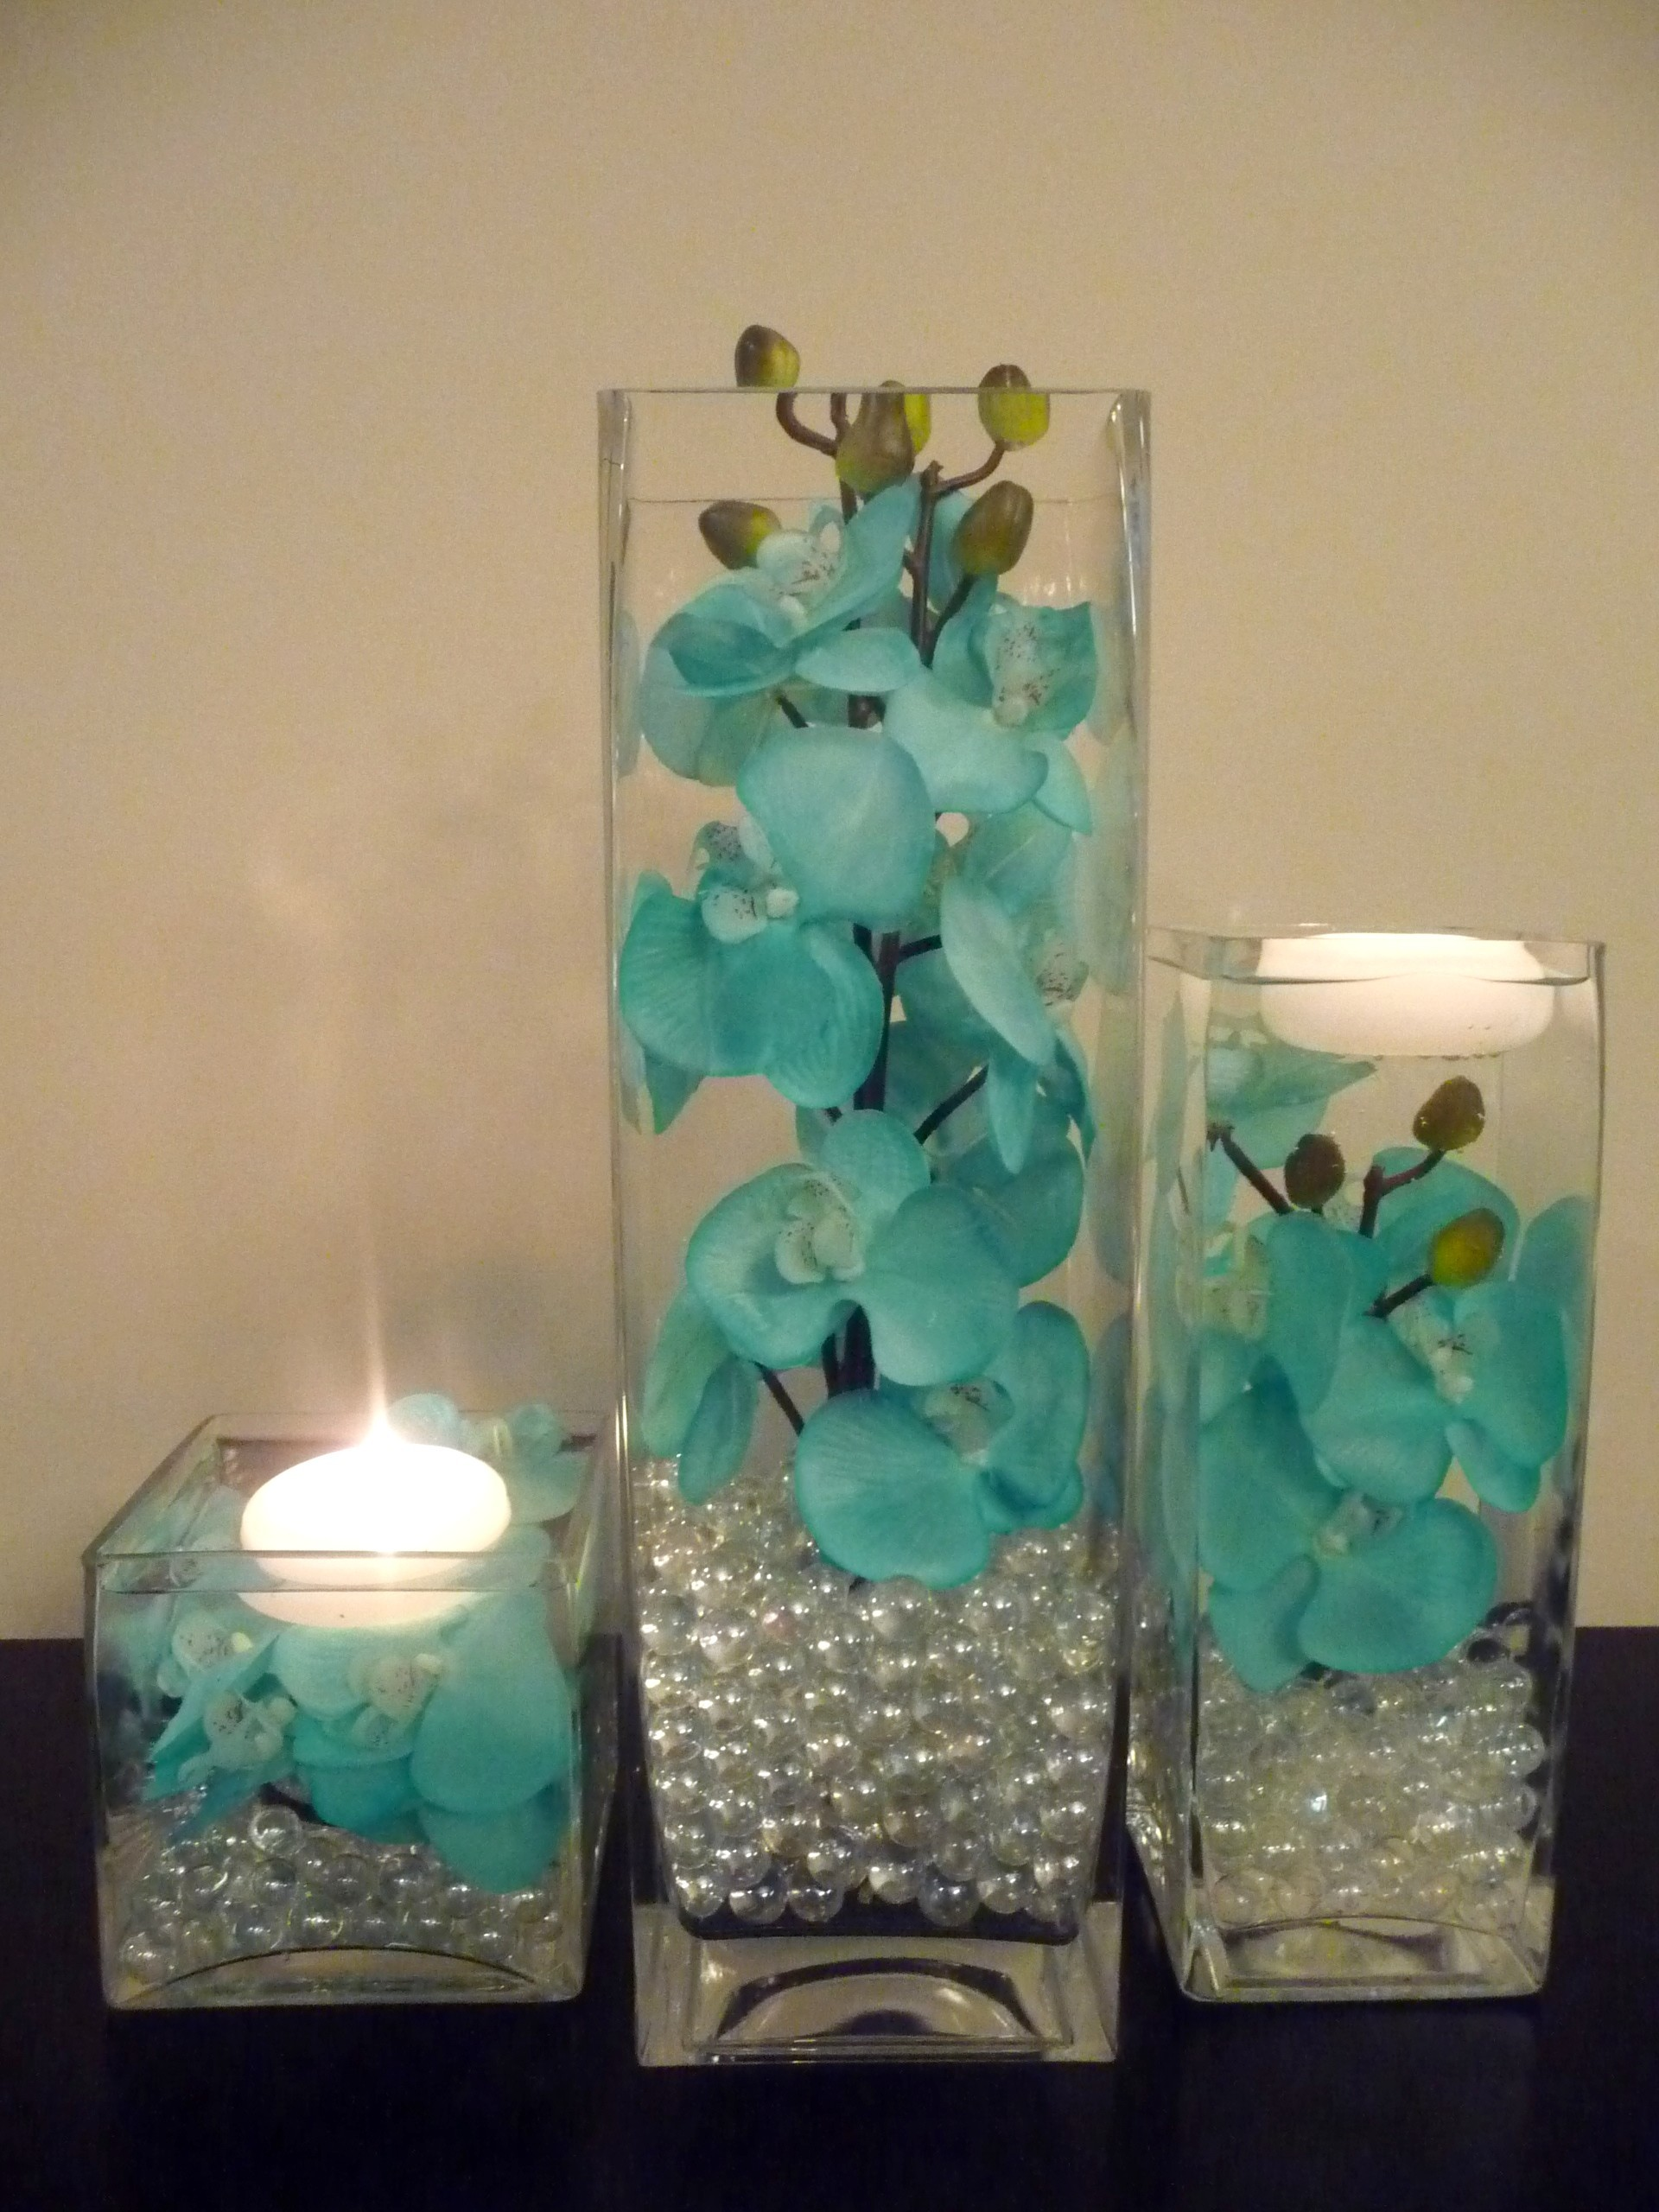 Ceremony, Inspiration, Reception, Flowers & Decor, blue, Ceremony Flowers, Centerpieces, Flowers, Centerpiece, Wedding, Bridal, Teal, Board, Turquoise, Silk, Savannah event decor